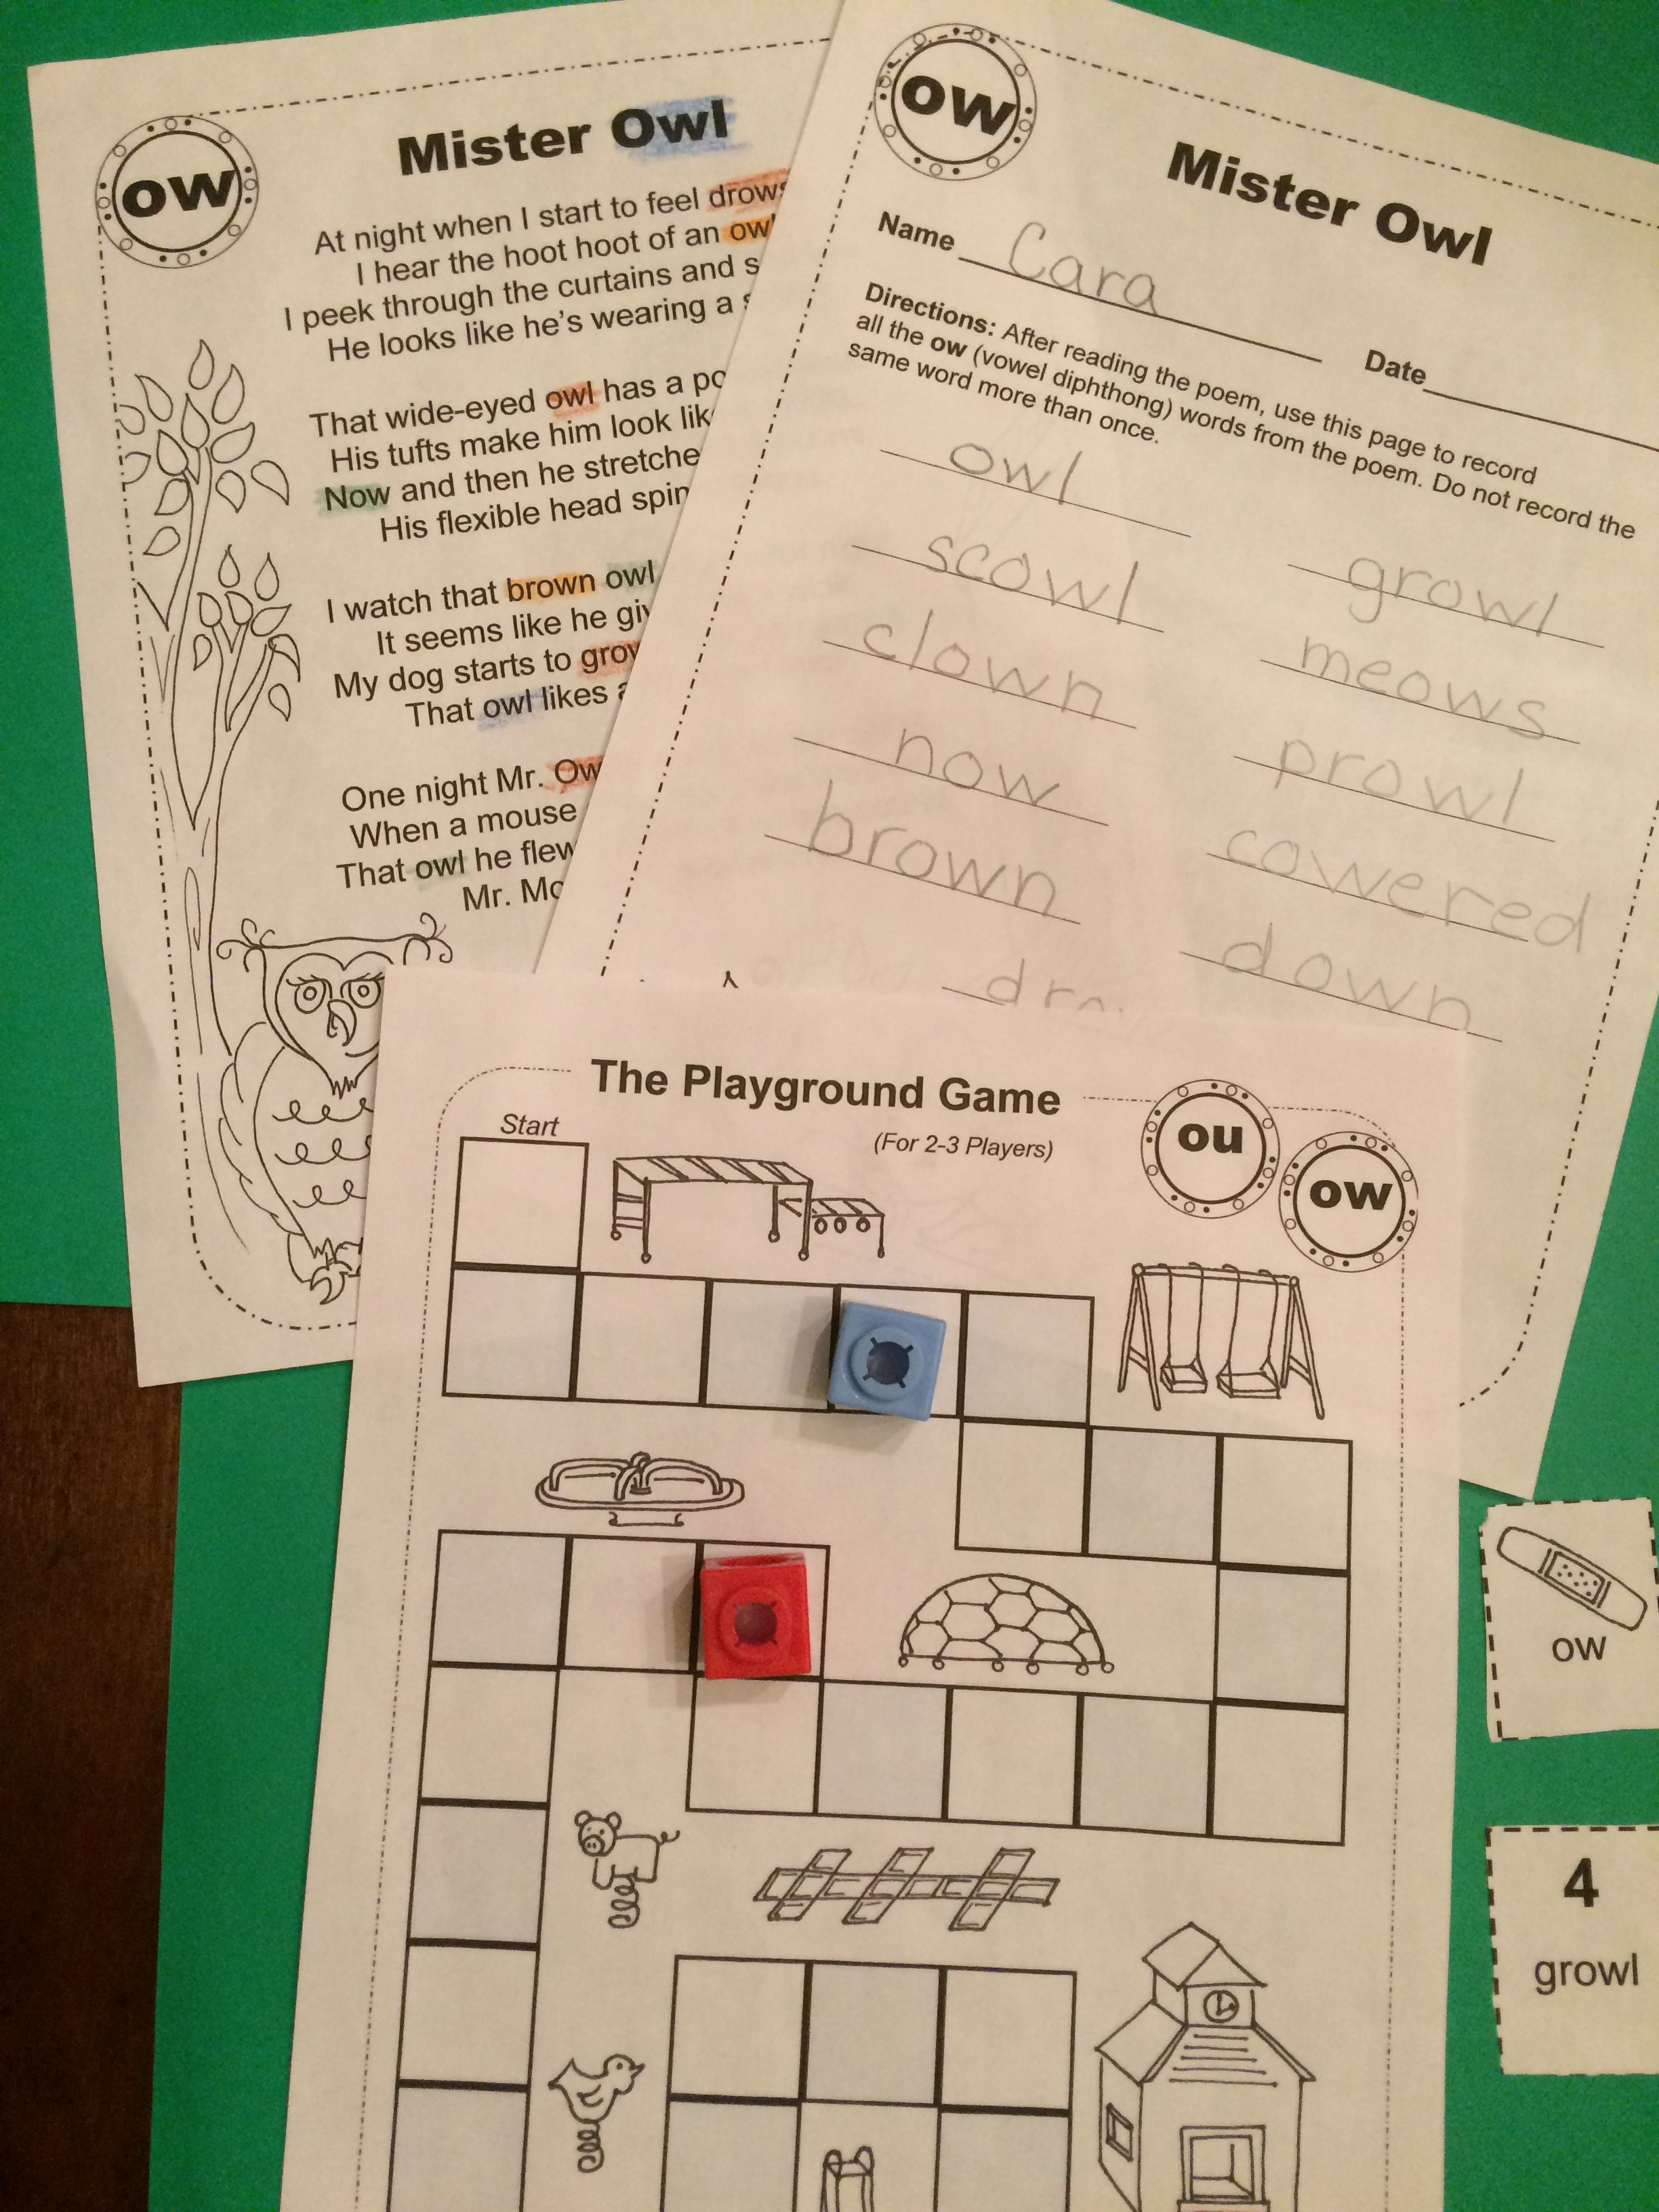 For 1st 3rd Grades Poems Worksheets And Game Boards A Fun Way To Practice Vowel Diphthongs Vowel Diphthongs Diphthongs Vowel